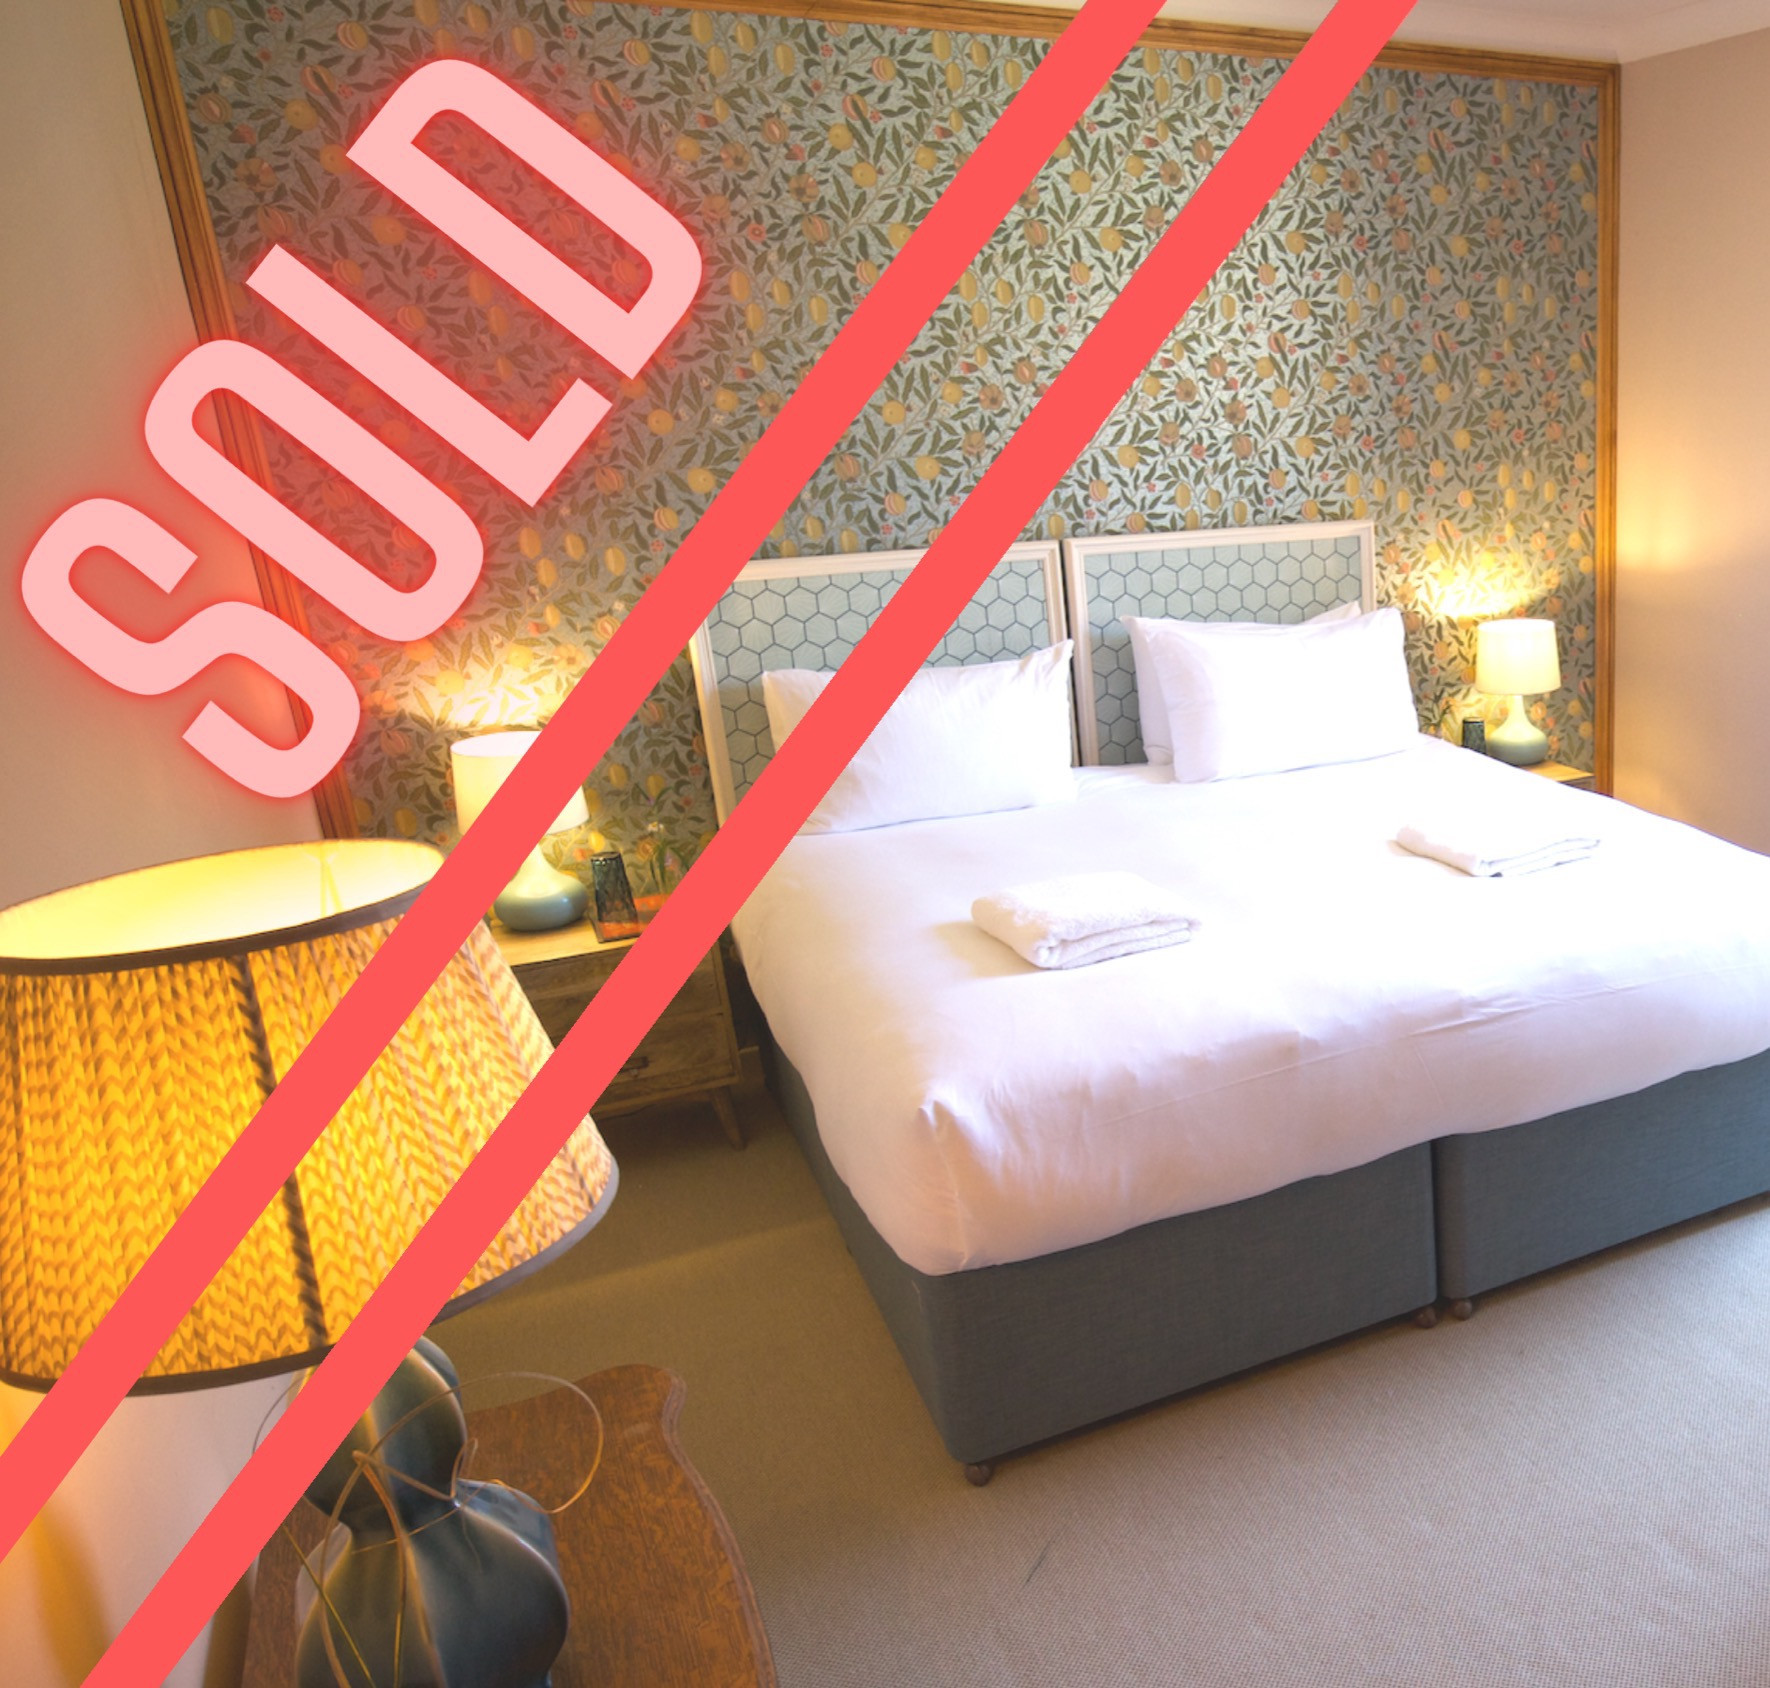 Room 1 - 1 Person - Double - Total £595